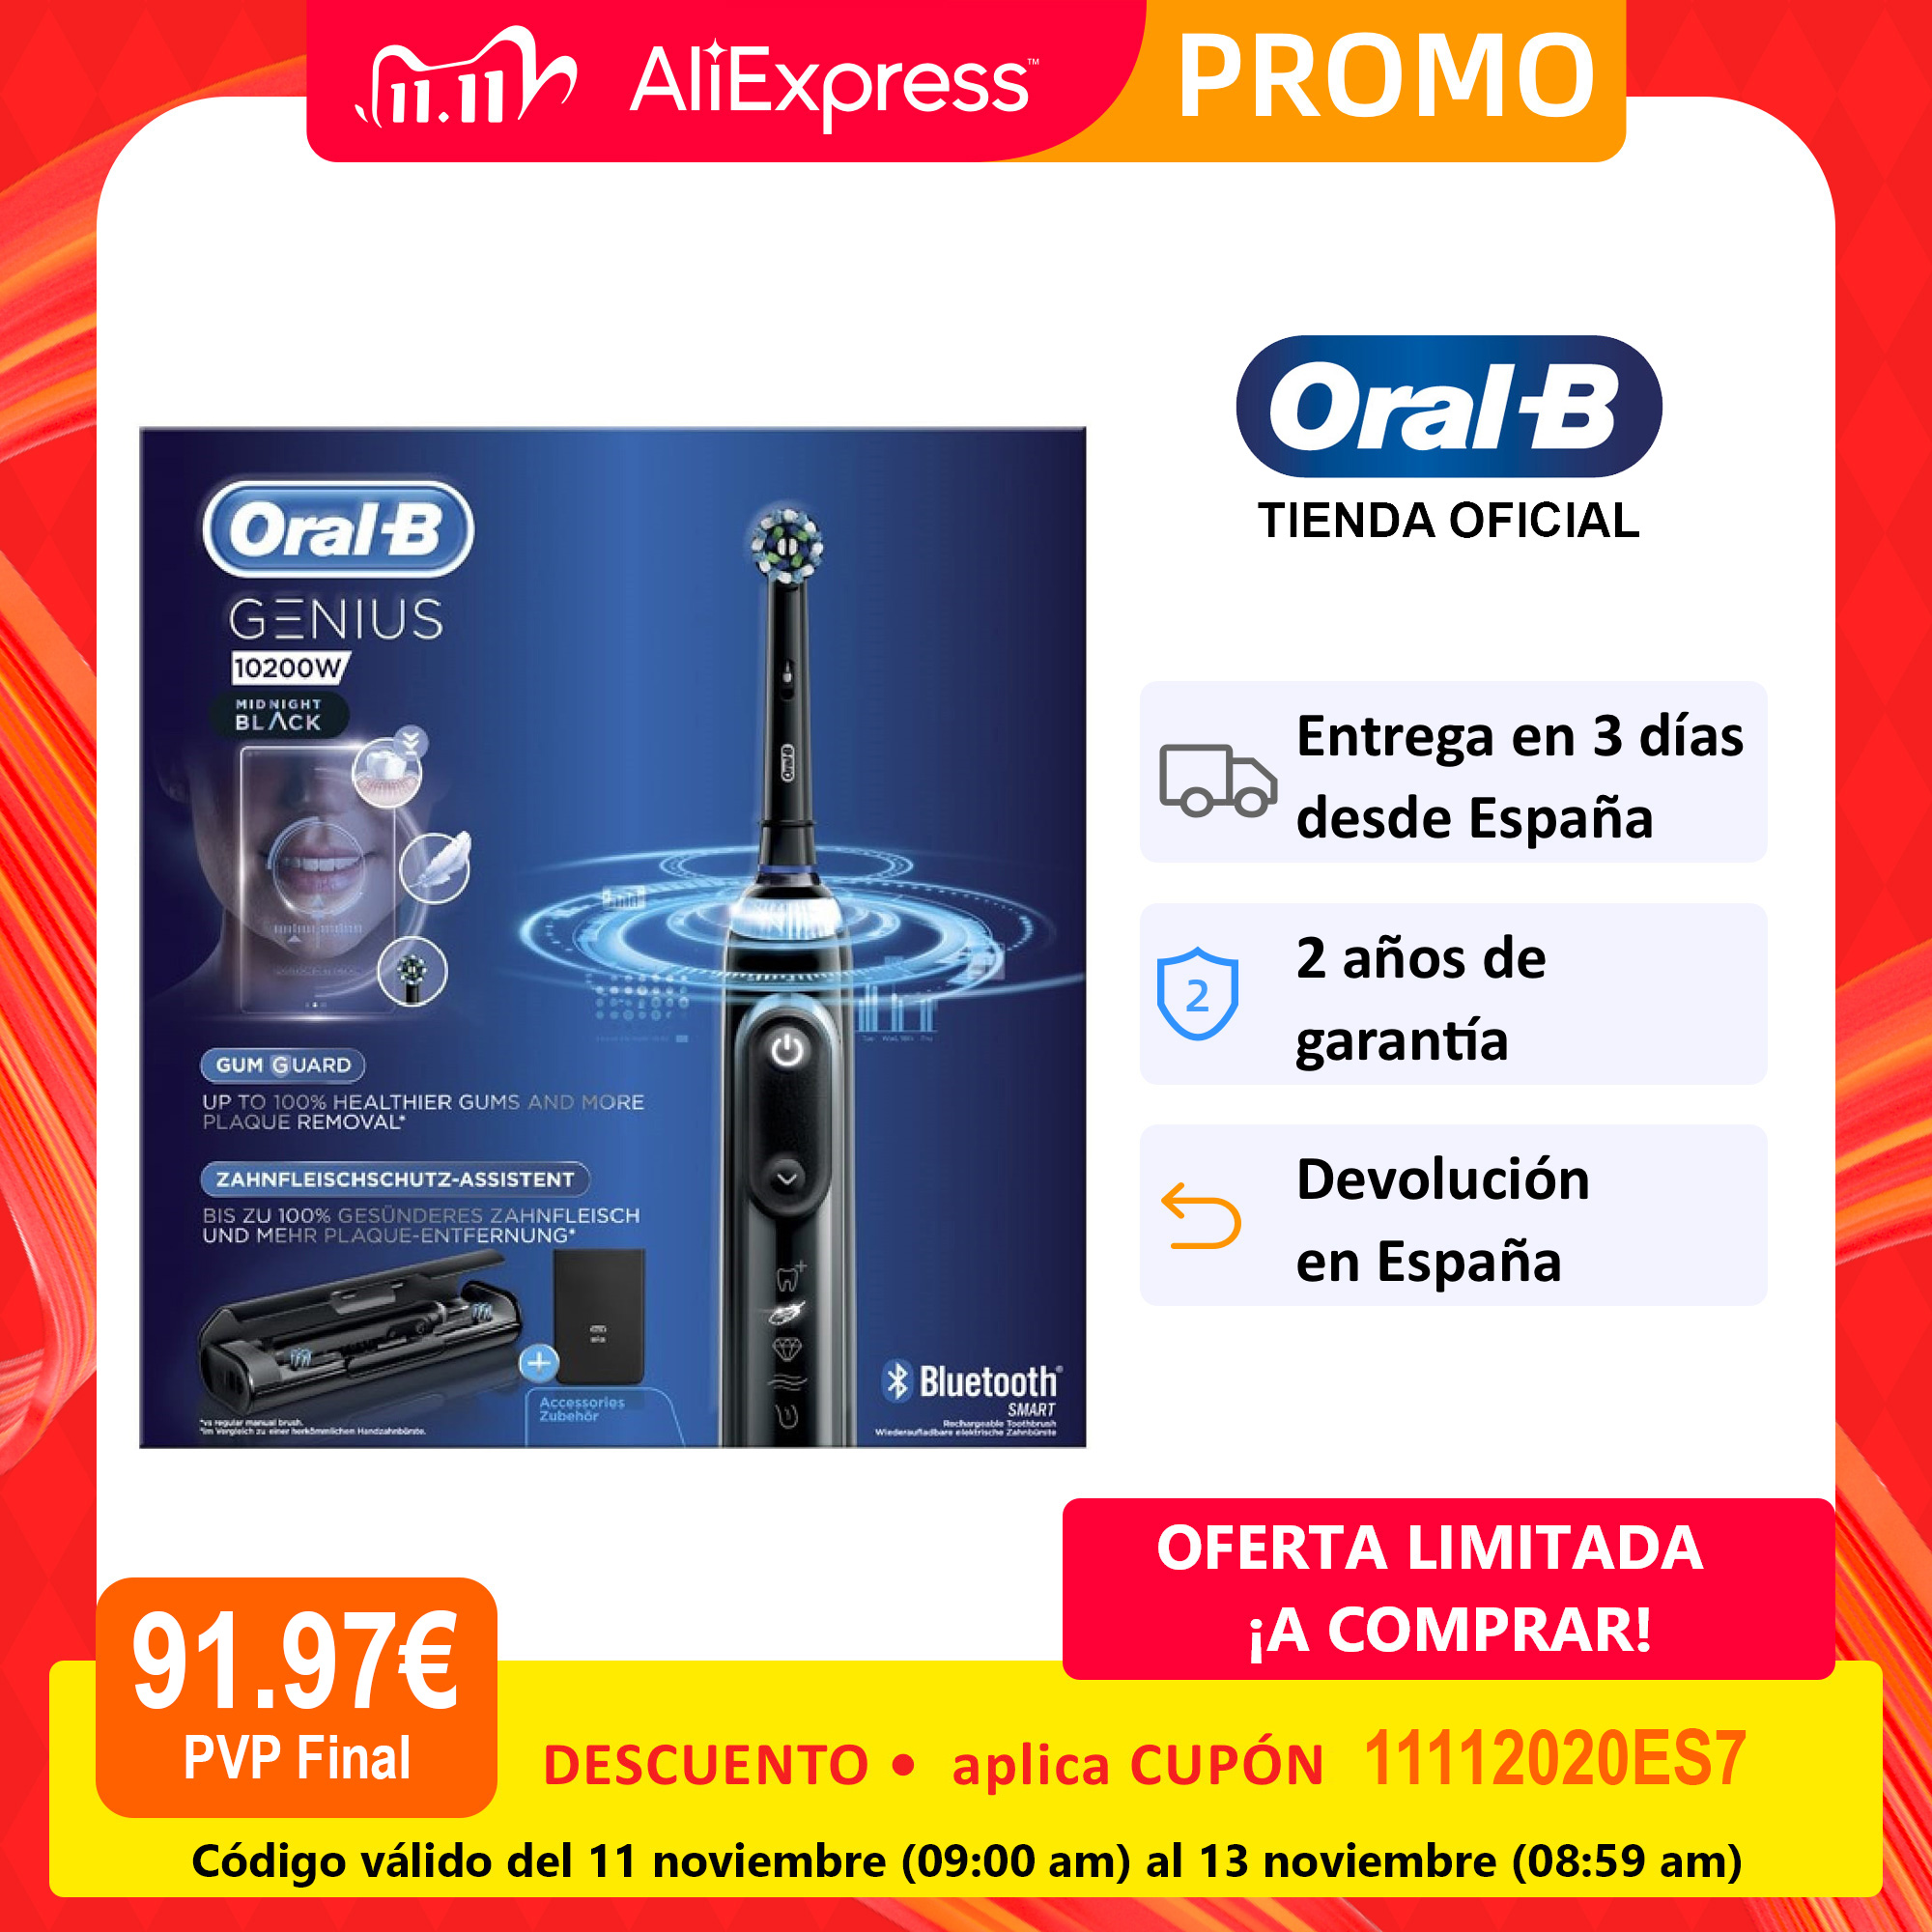 Oral B Genius 10200W, rechargeable electric toothbrush, charge indicator, up to 14 days, 4 brushed modes, 2 heads-0